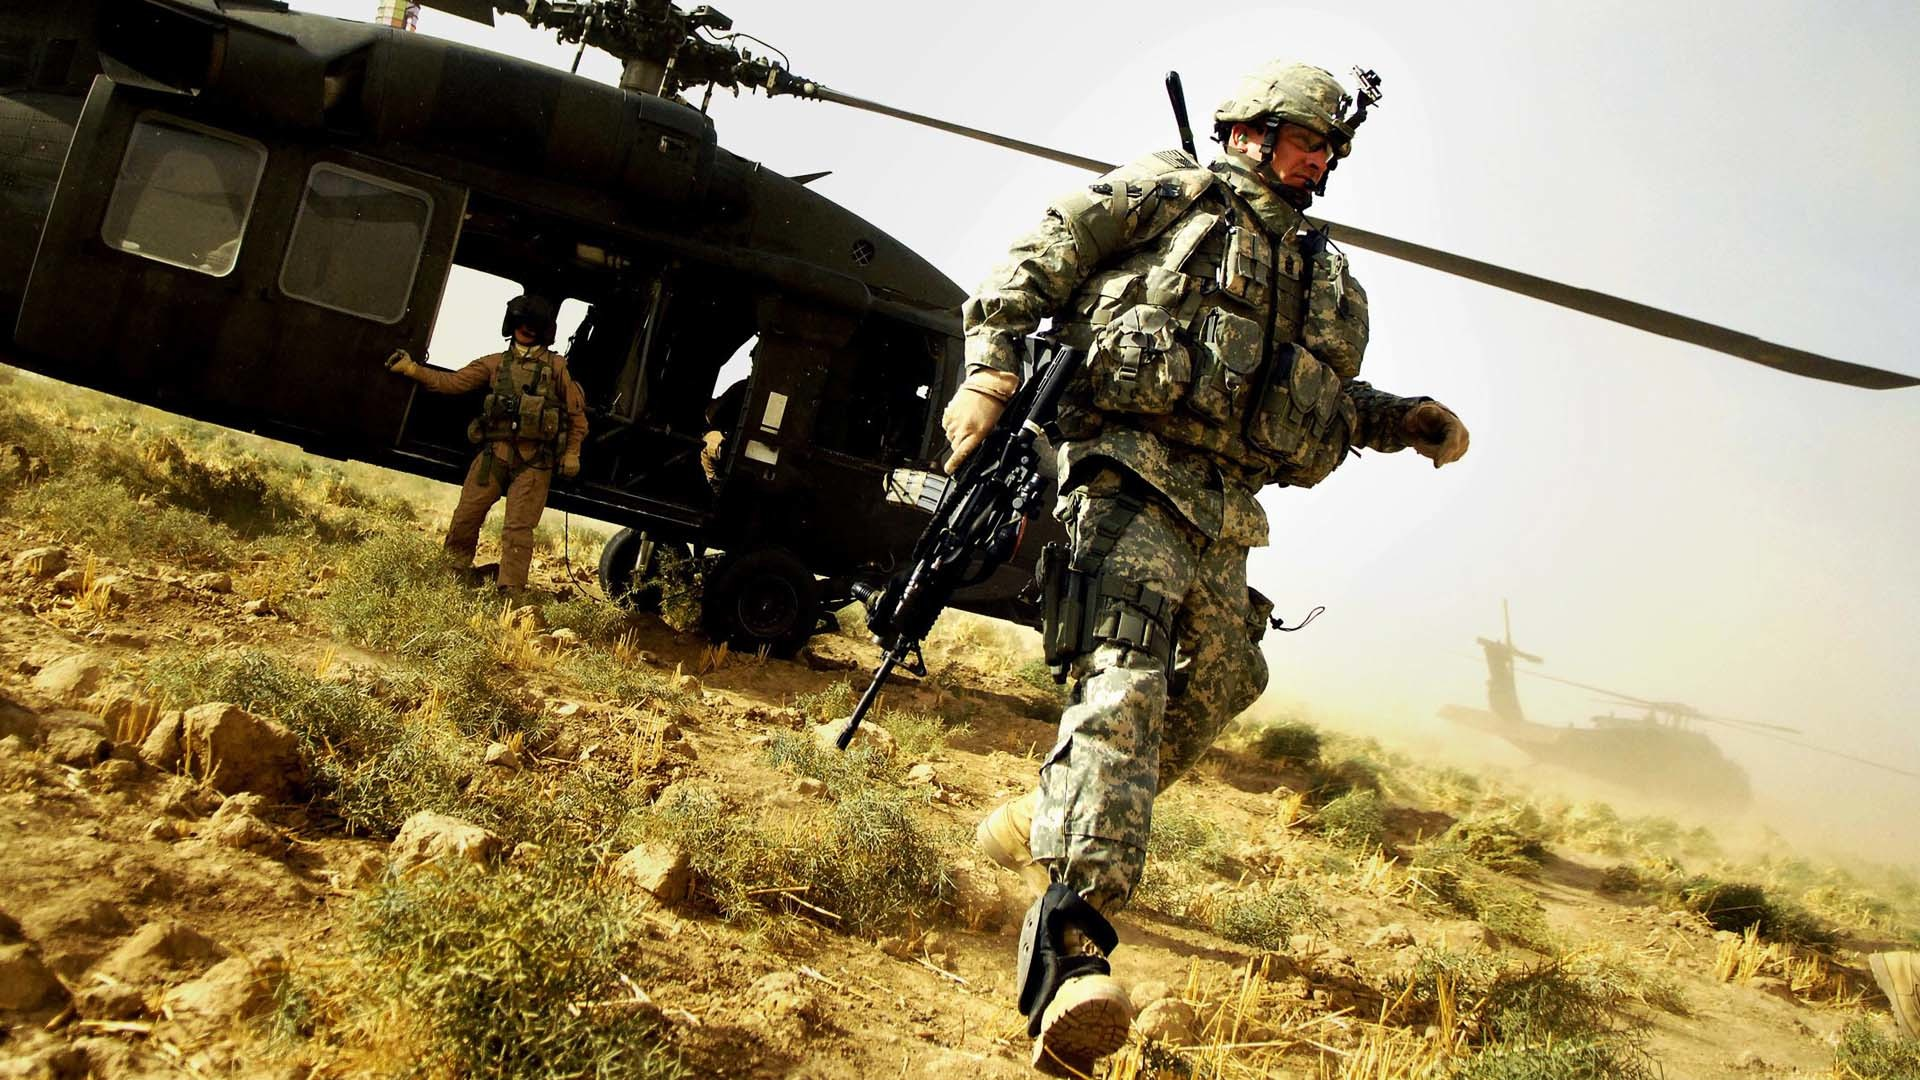 Us Army Soldier Wallpapers Full HD – Daily Backgrounds in HD